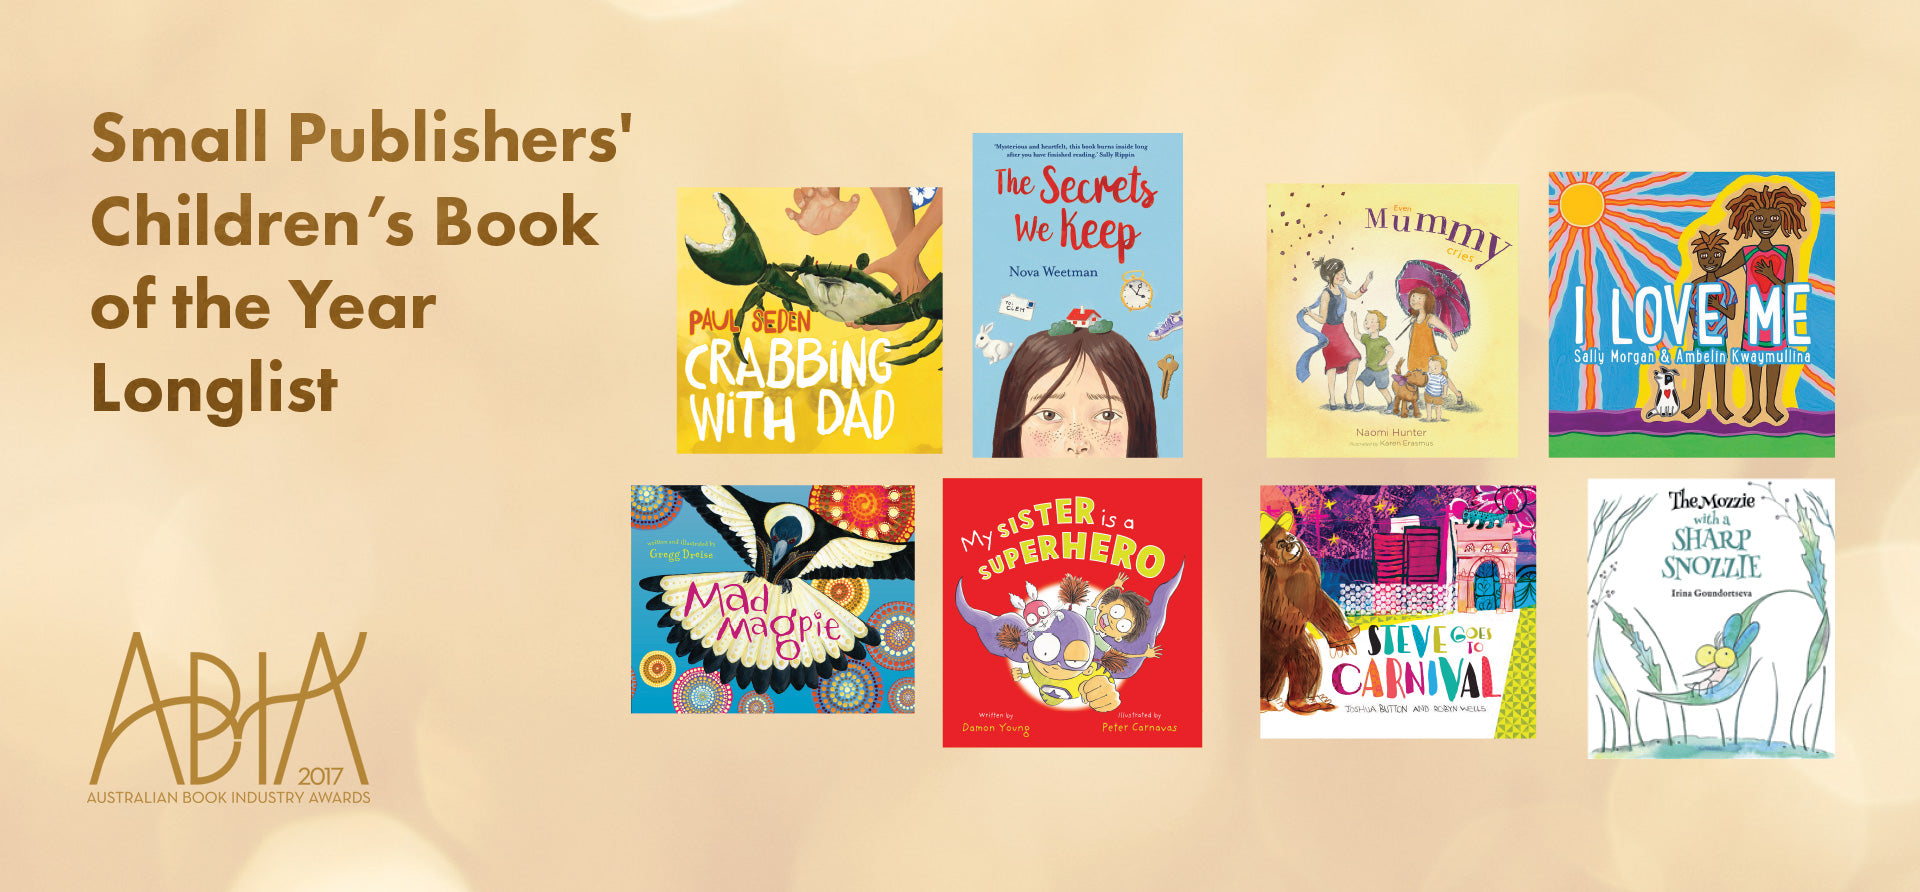 ABIAs Small Publishers' Children's Book of the Year Longlist